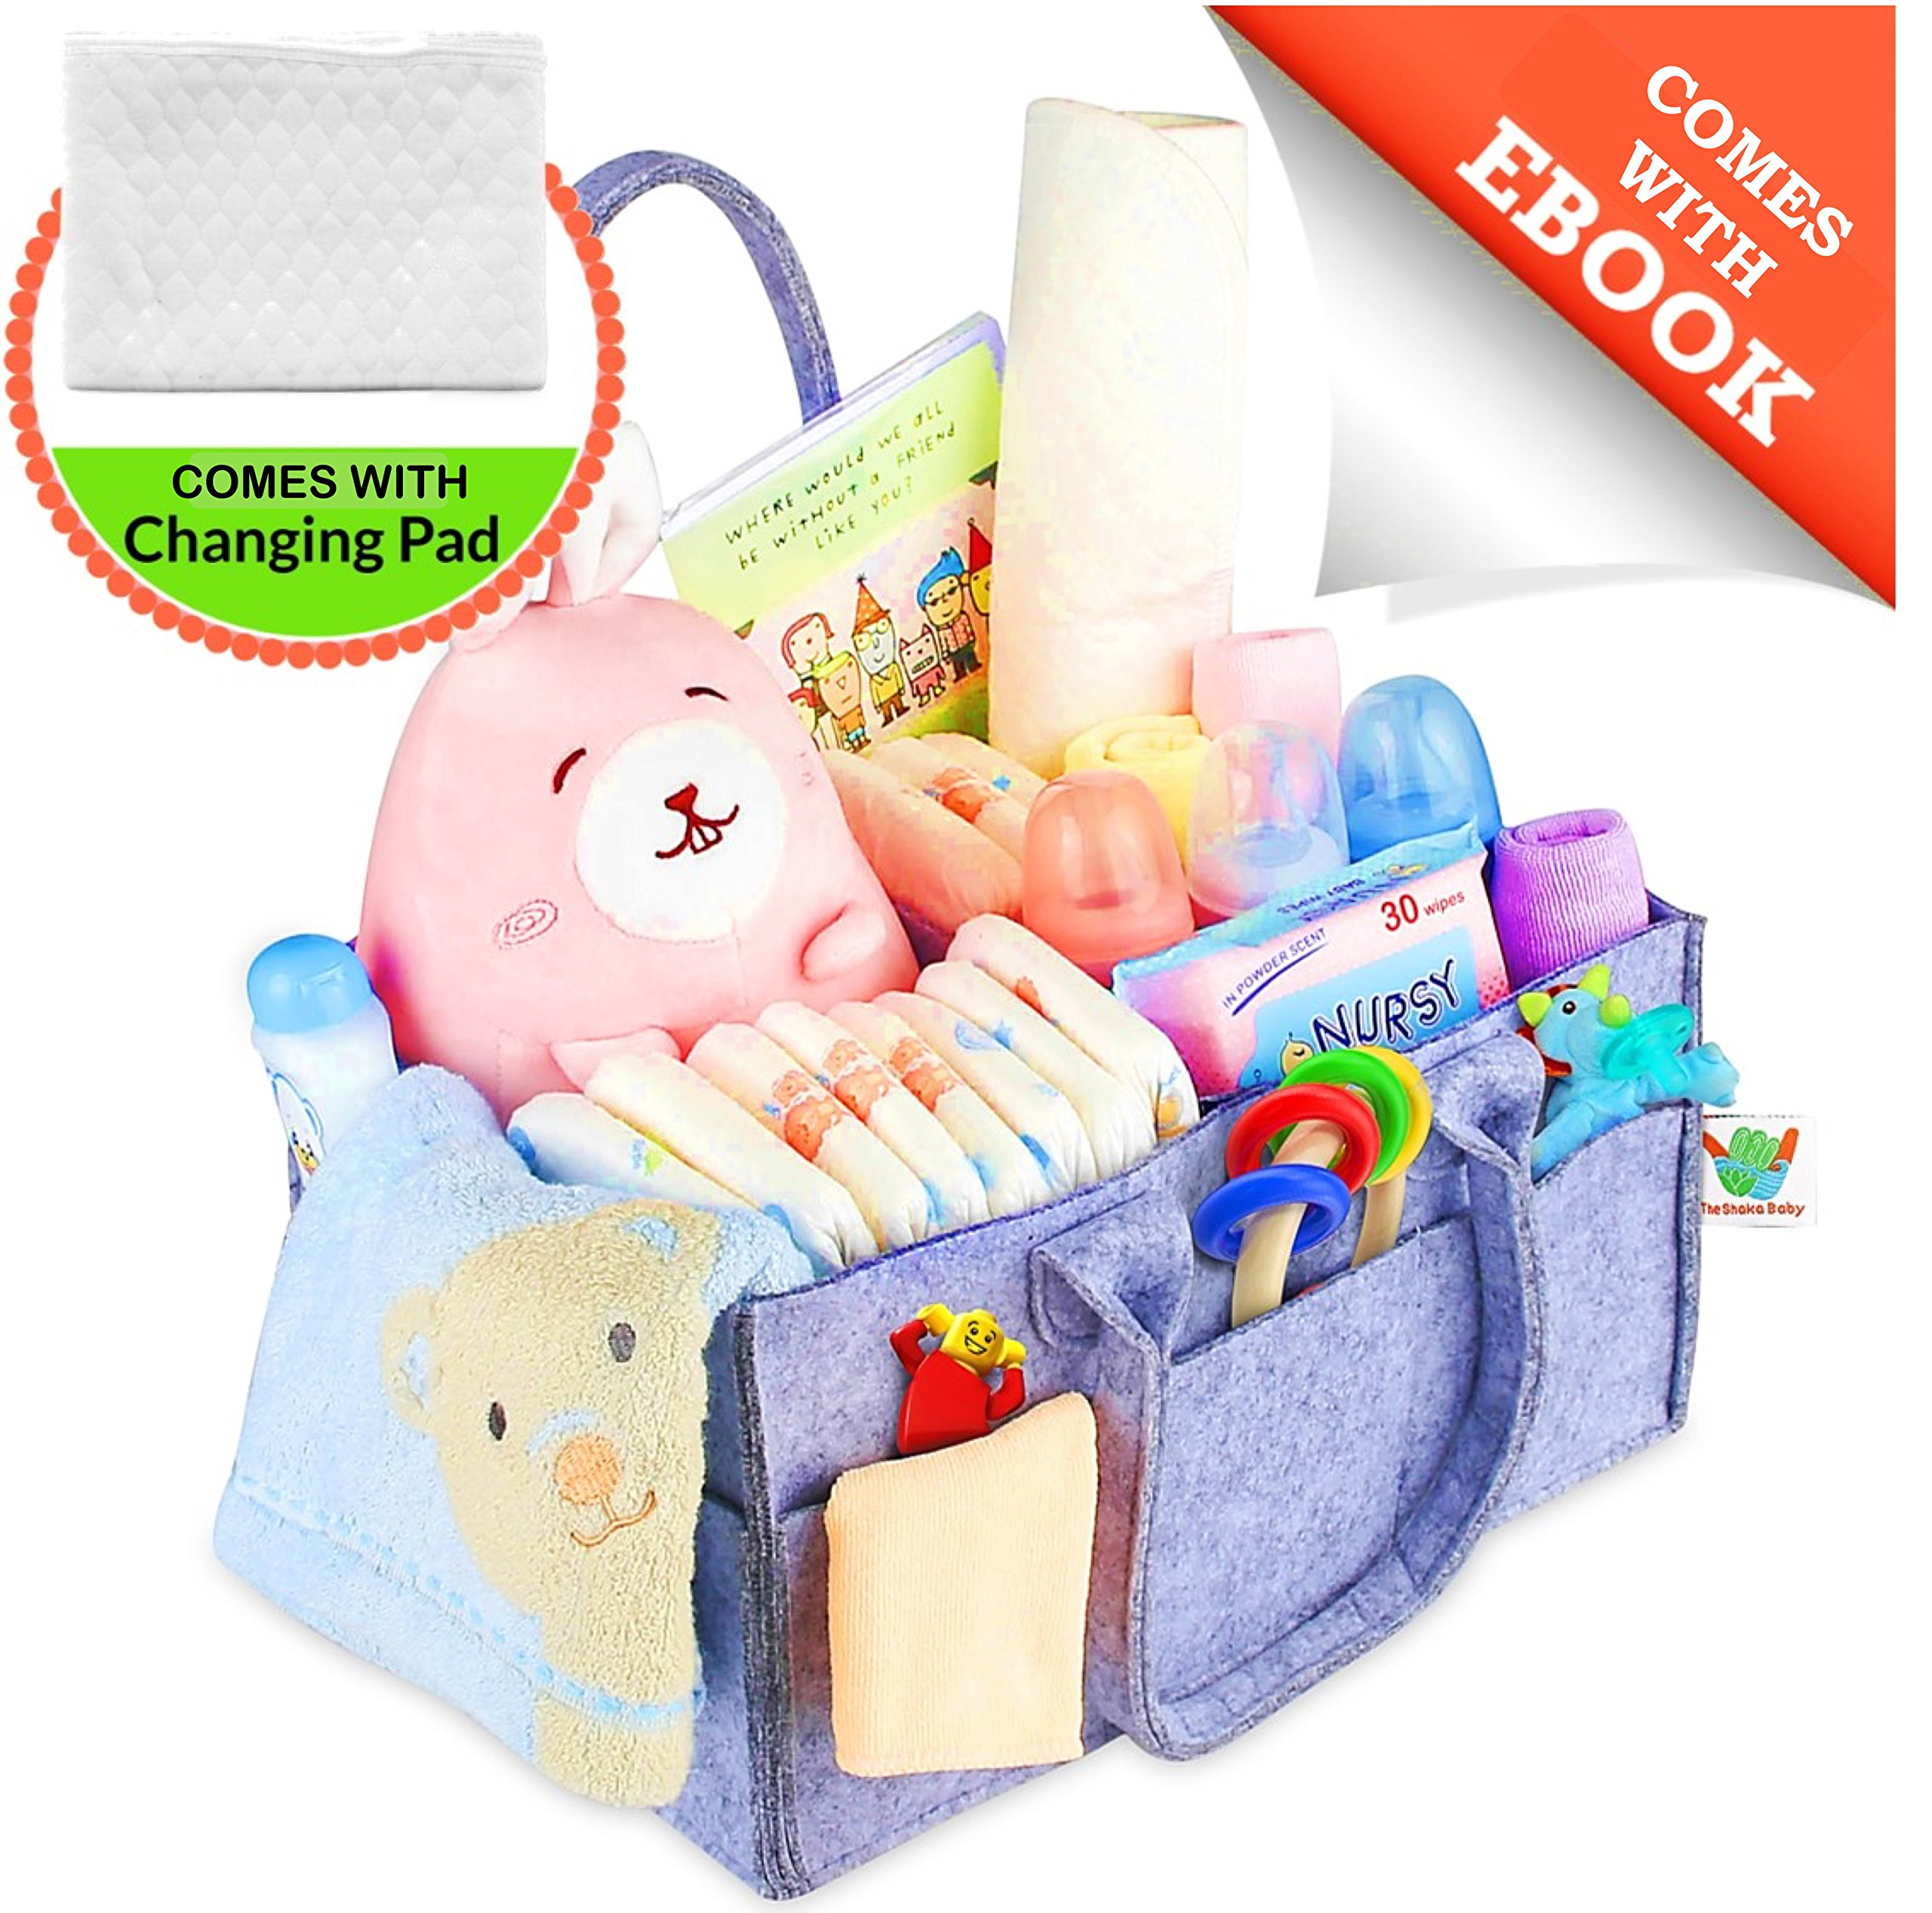 Diaper Caddy Portable Changing Pad Kit   Nursery Storage Organizer Bin with Waterproof Mat for Girls, Boys, Newborns, Infants & Toddlers   Perfect Baby Shower Gift, Car Travel + EBOOK